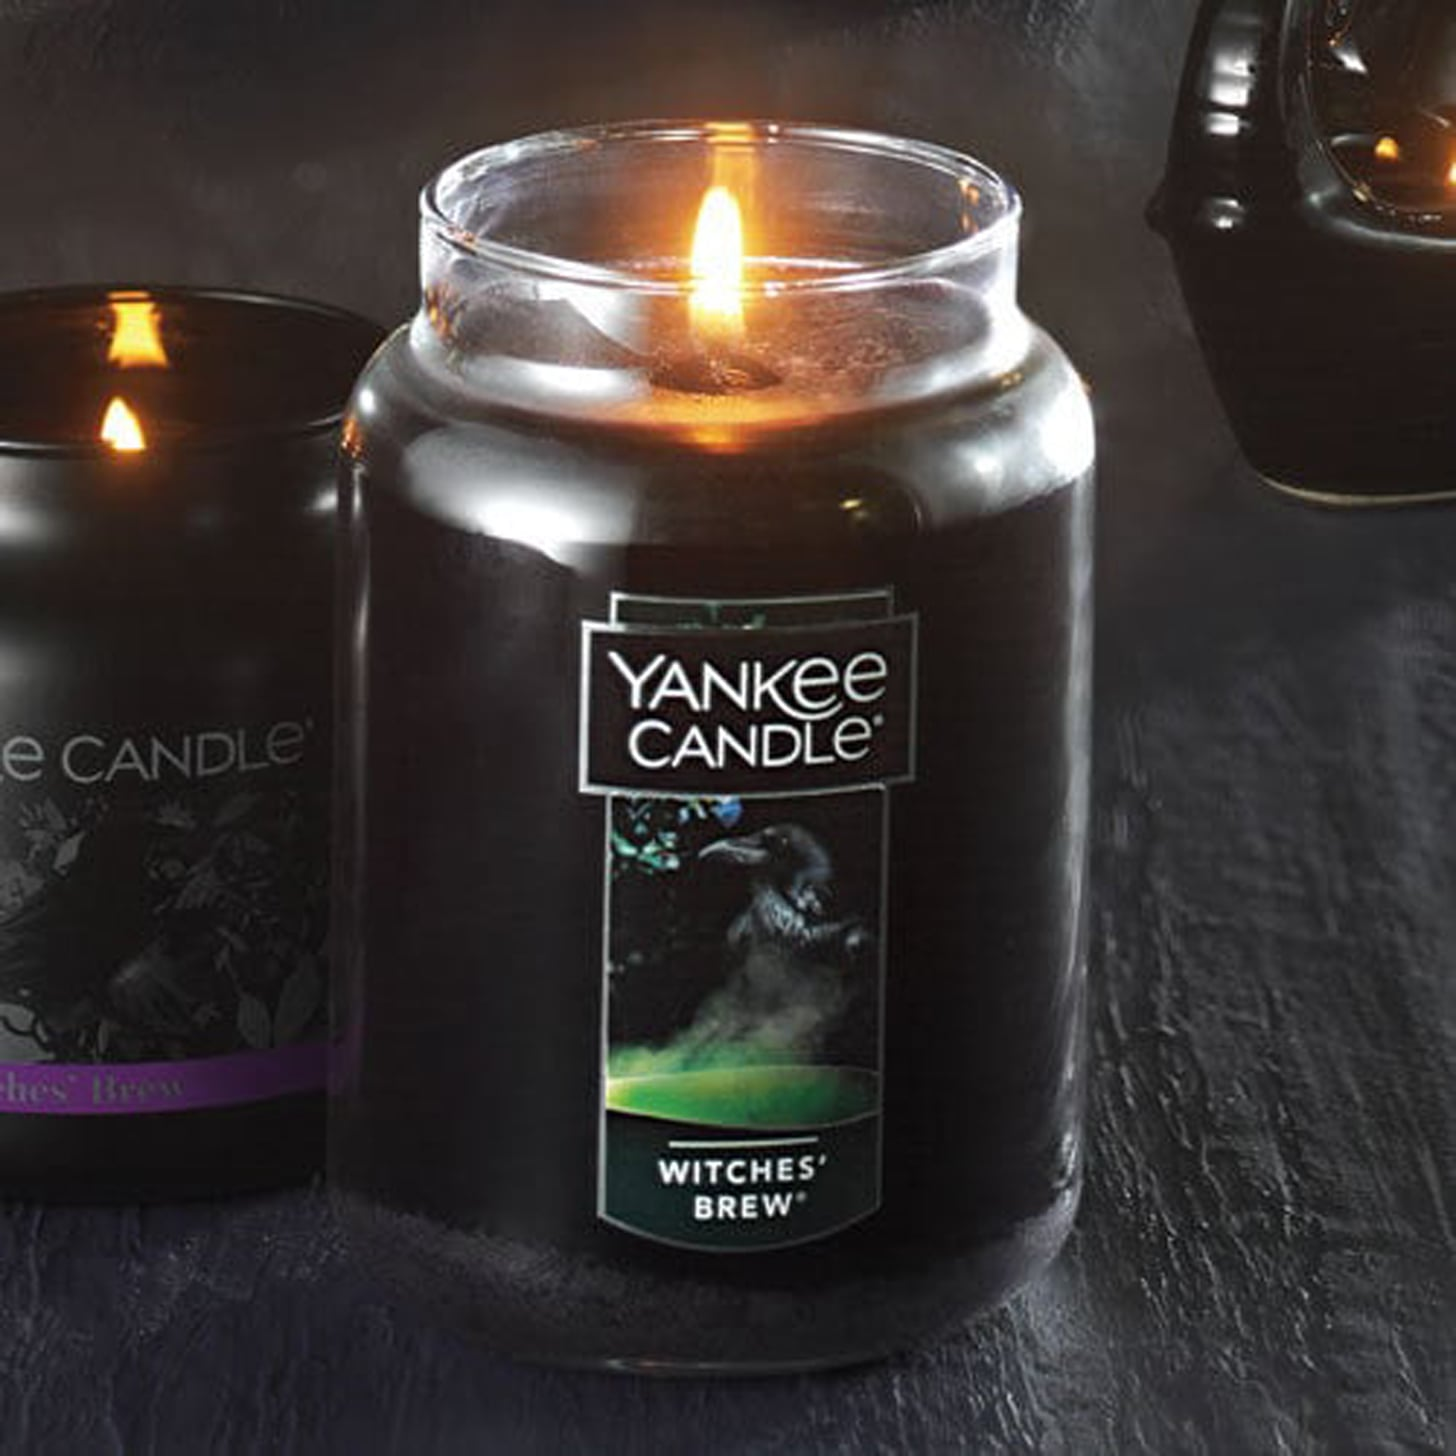 Yankee Candle Halloween Collection 2020 Popsugar Home Australia